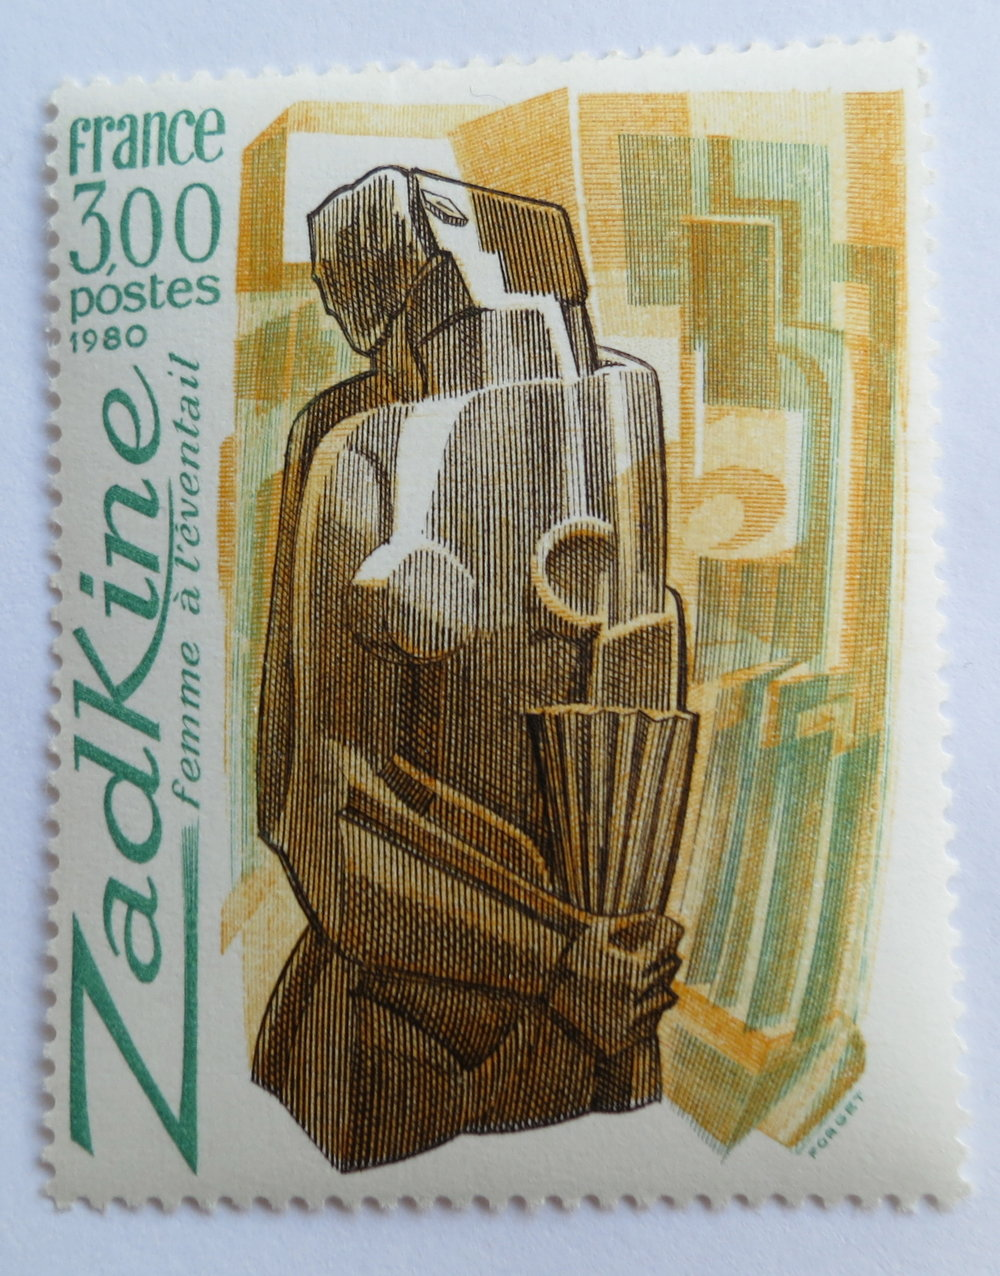 French stamp 1980. Size: 53 x 40 mm.